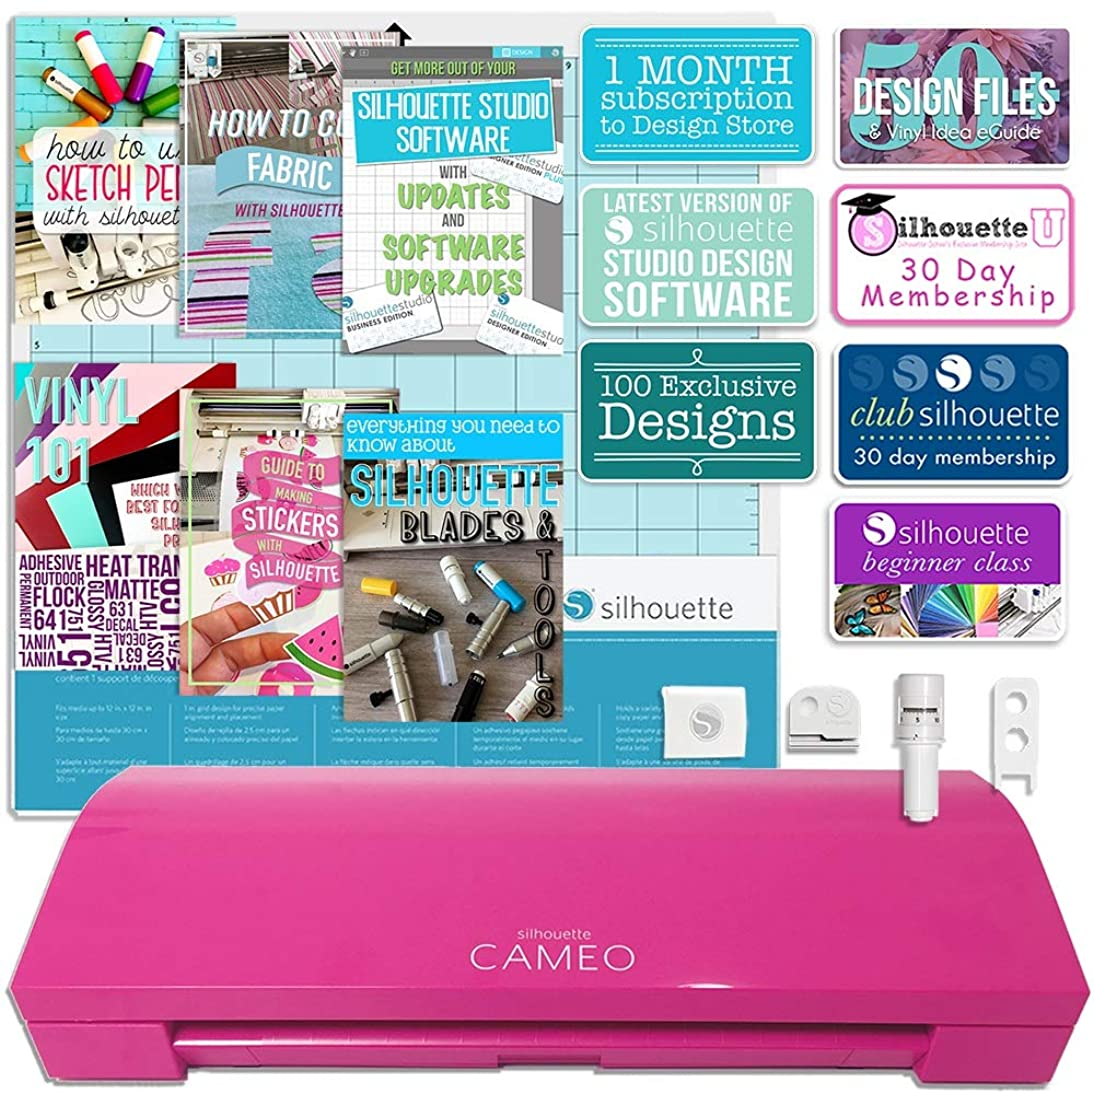 Silhouette America Cameo 3 Glitter Pink Edition with with Bluetooth, Auto Adjusting Blade, Vinyl Trimmer, 12x12 Mat, 100 Designs, 110v-220v Power Cord Warranty